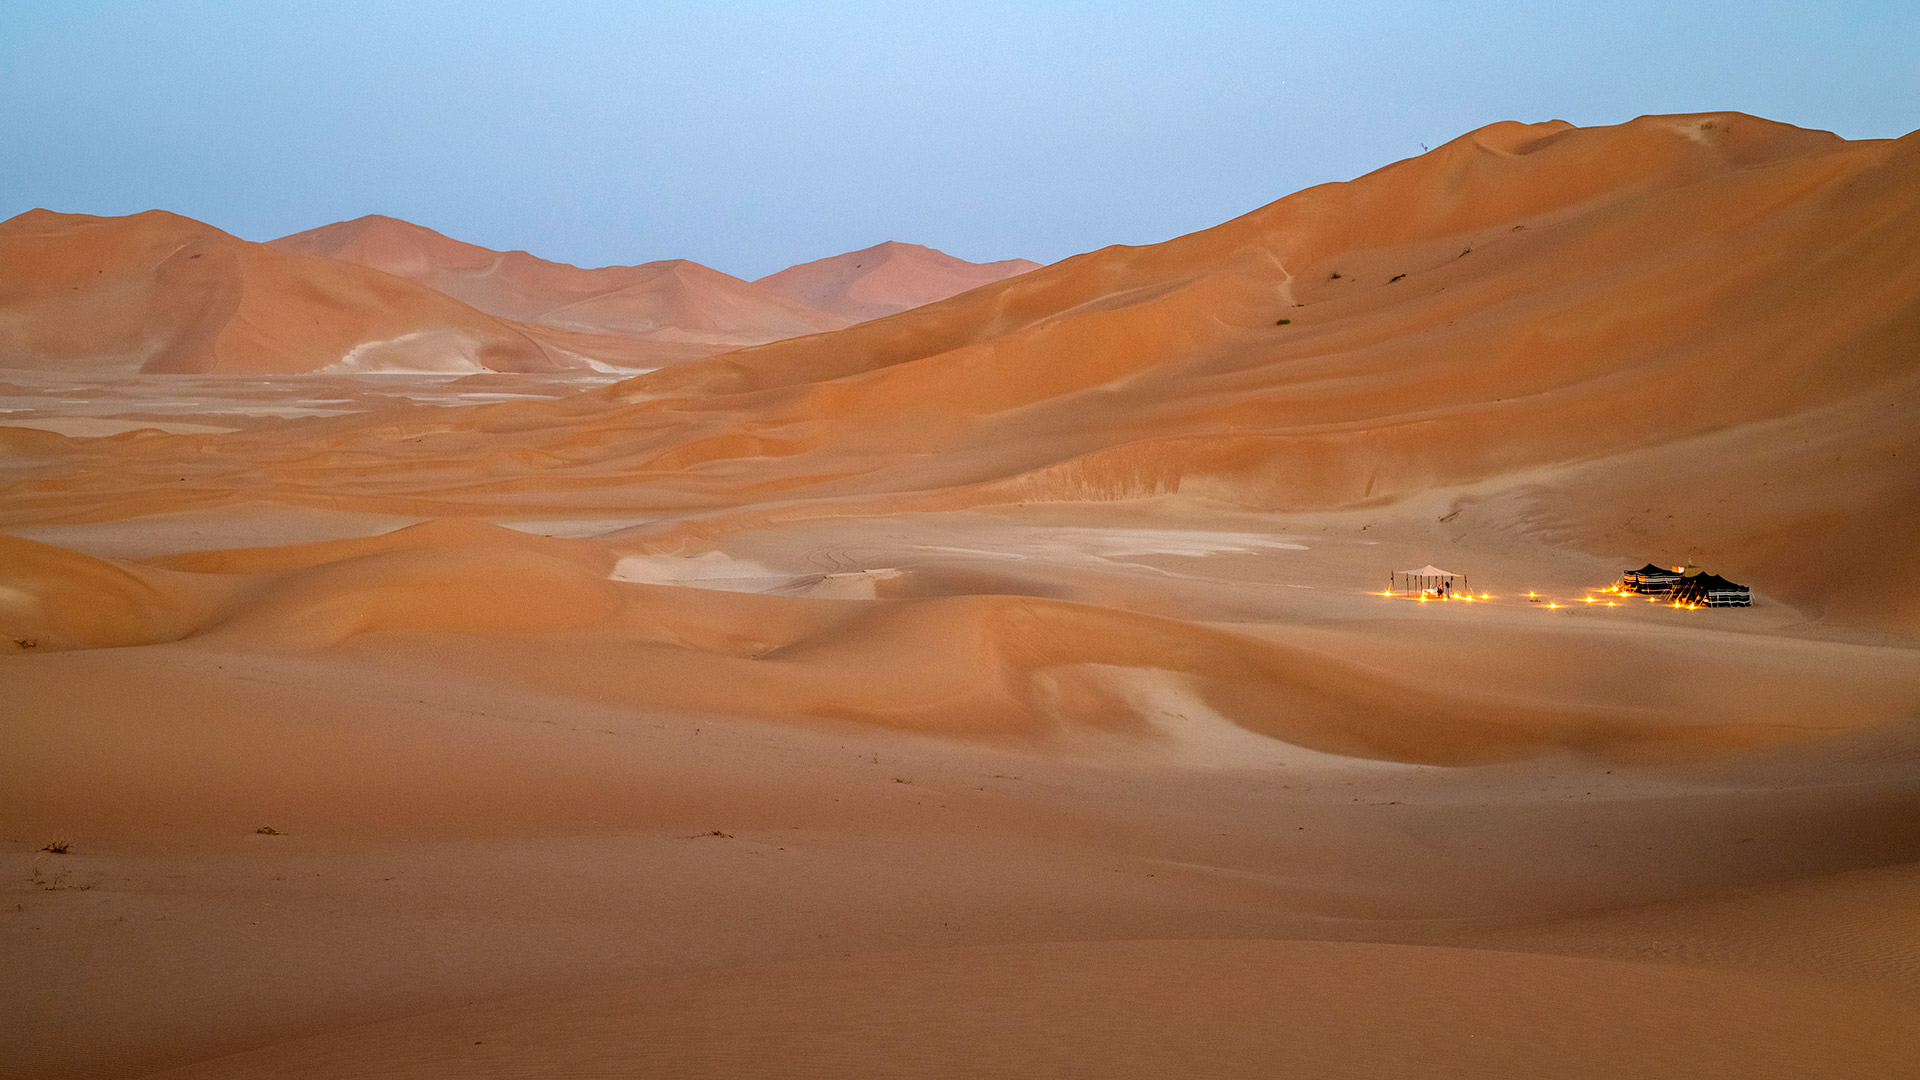 Dusk in the Empty Quarter